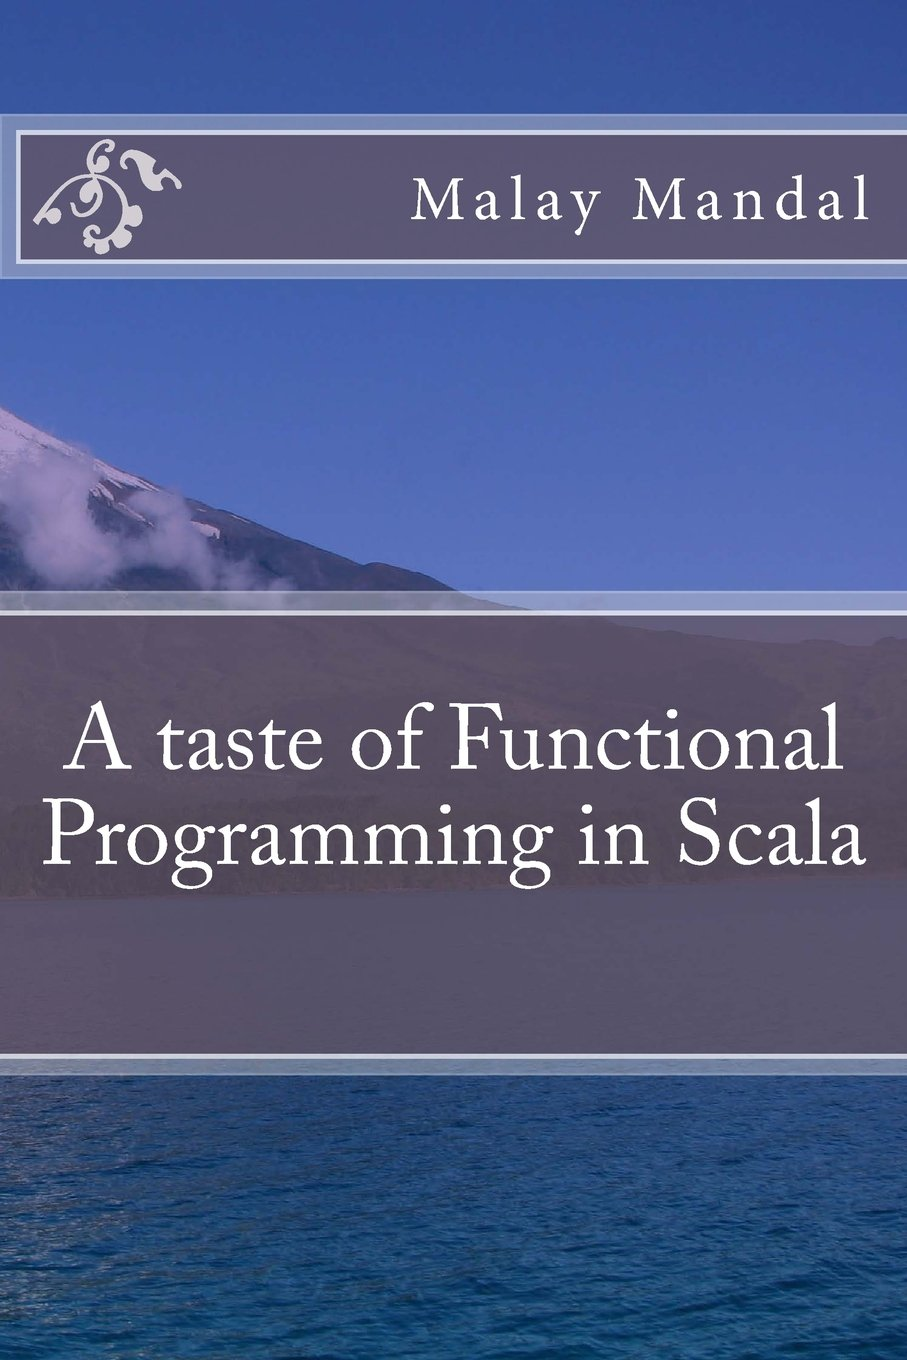 A taste of Functional Programming in Scala: Malay Mandal ...